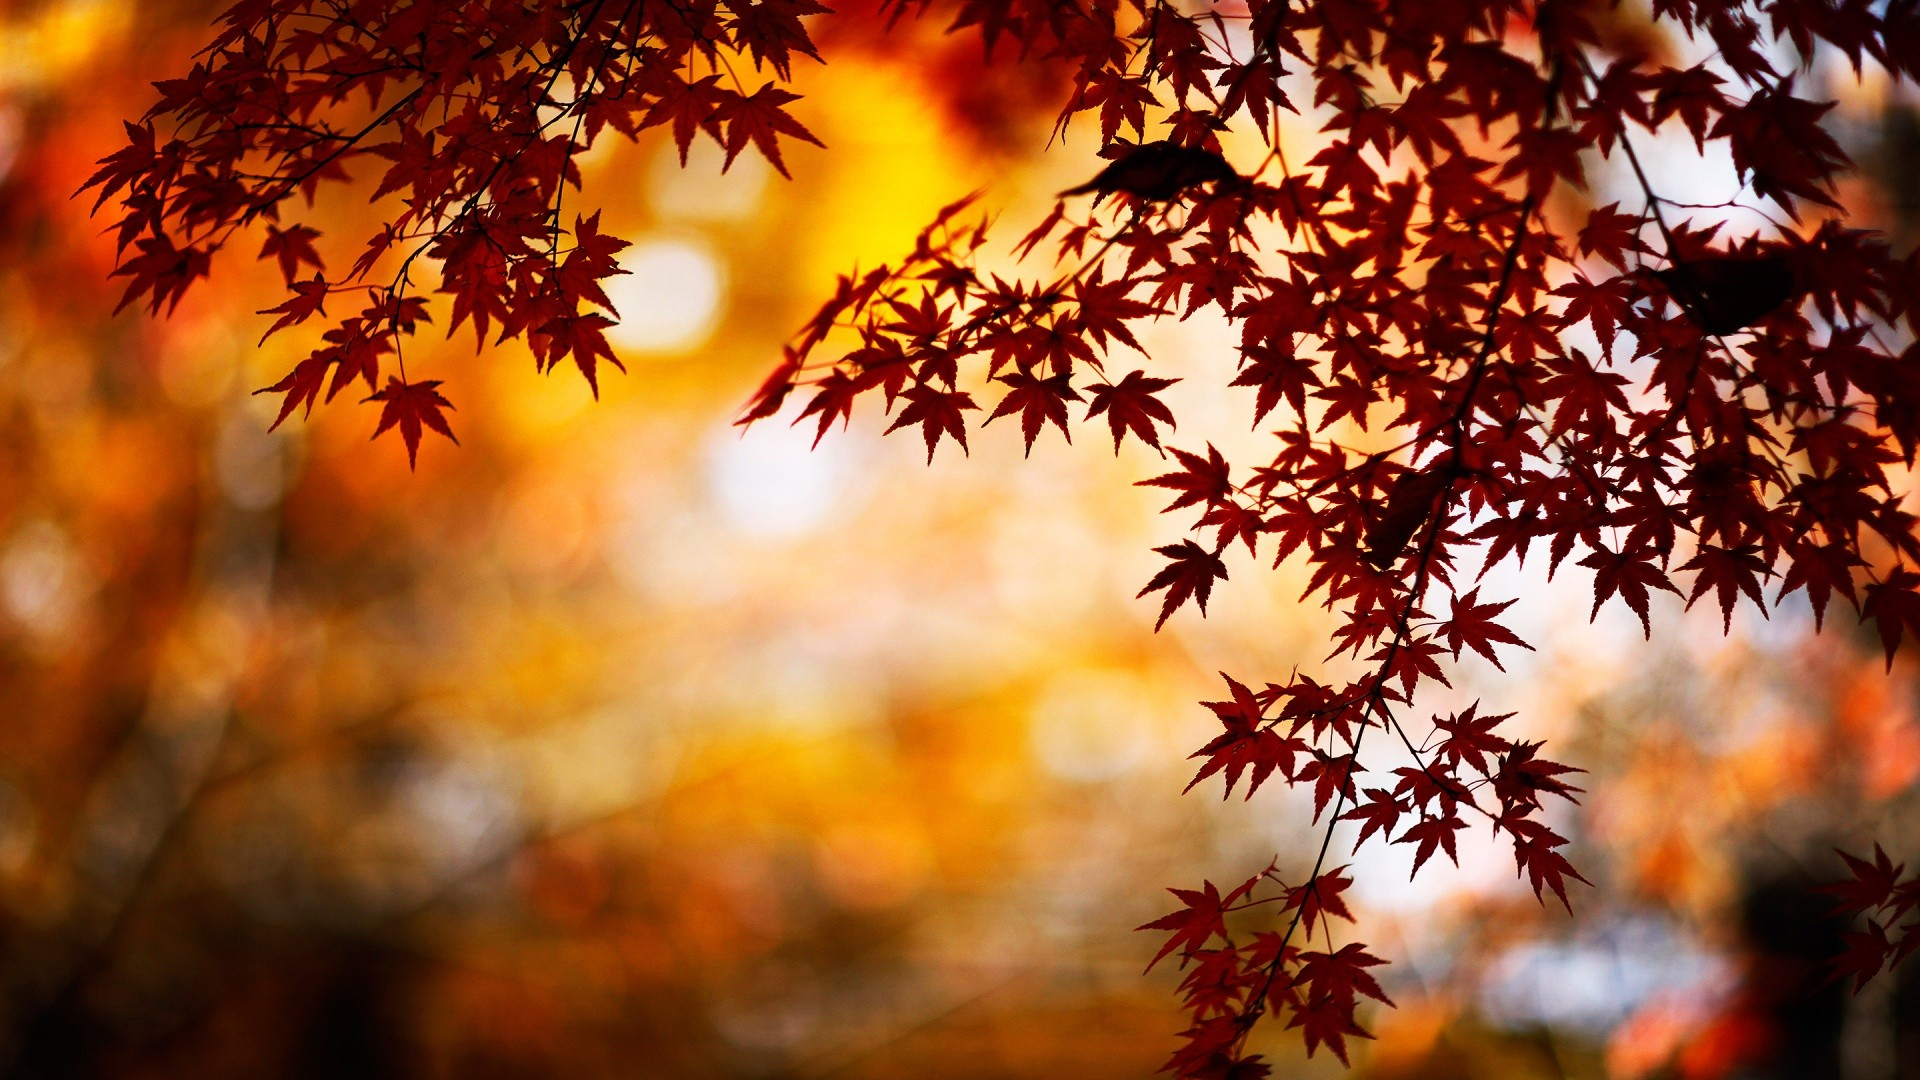 Wallpaper Fall nice hd wallpapers with red and orange colors